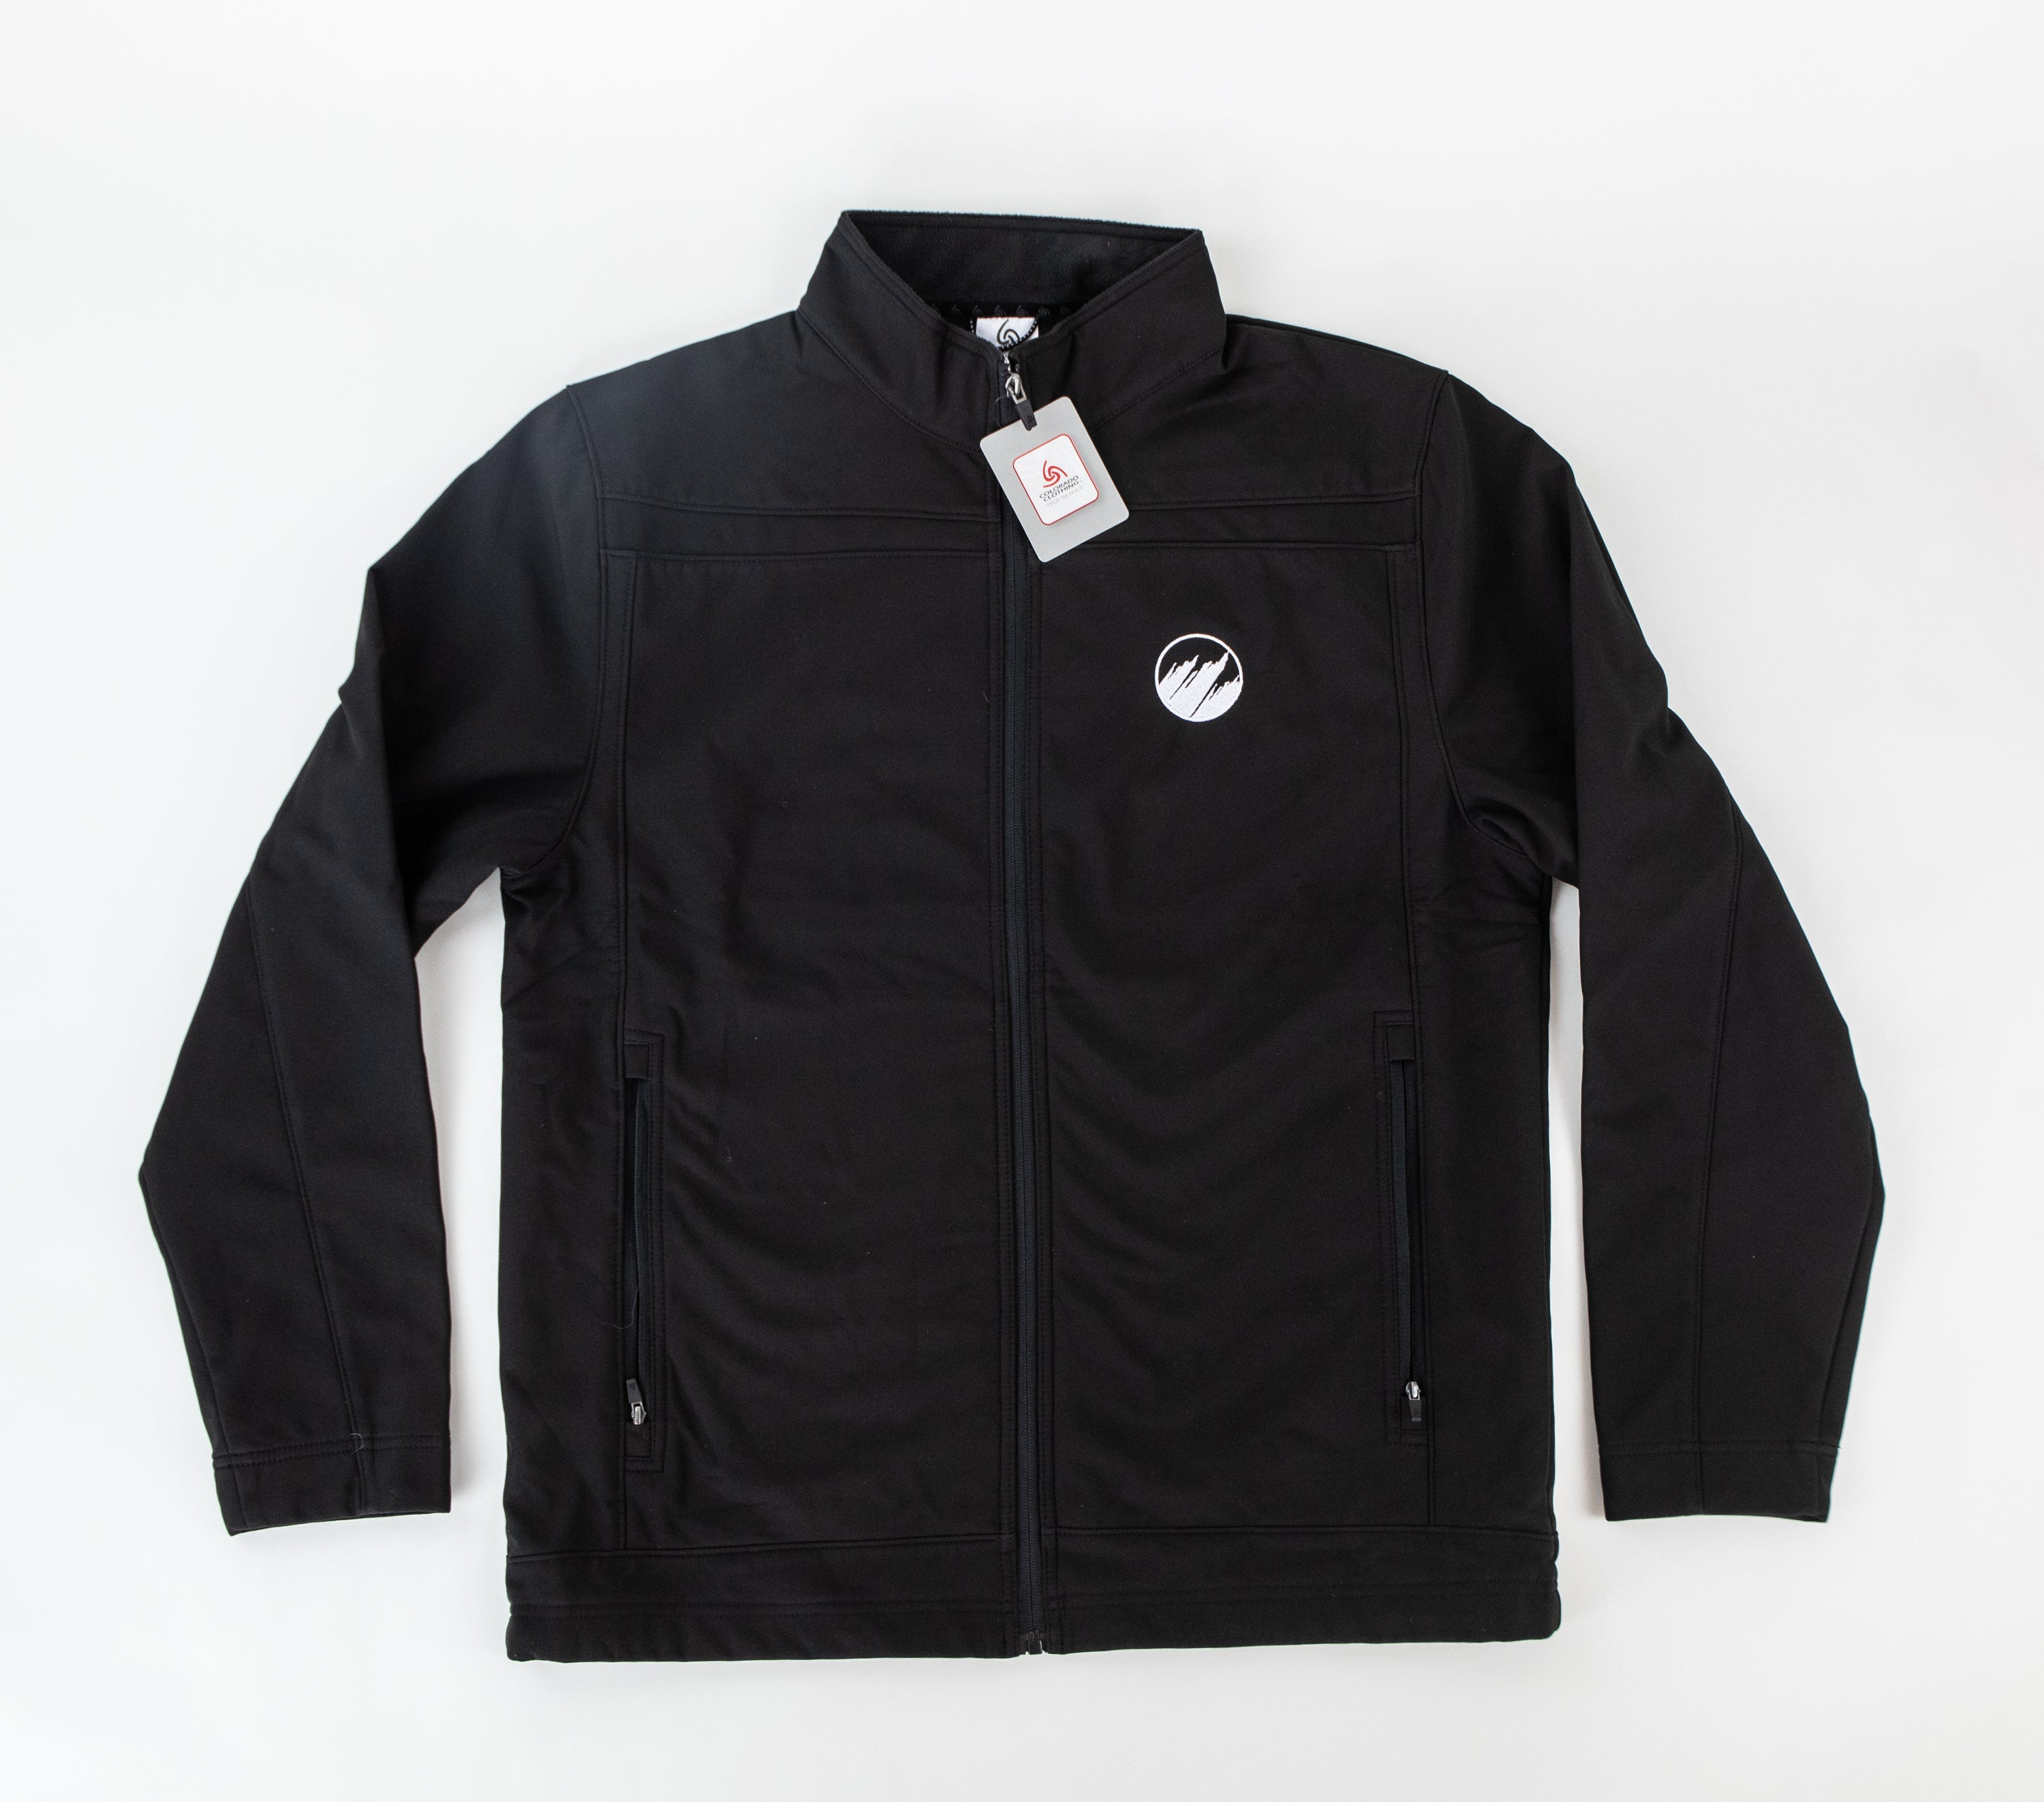 Men's Black Soft Shell Jacket